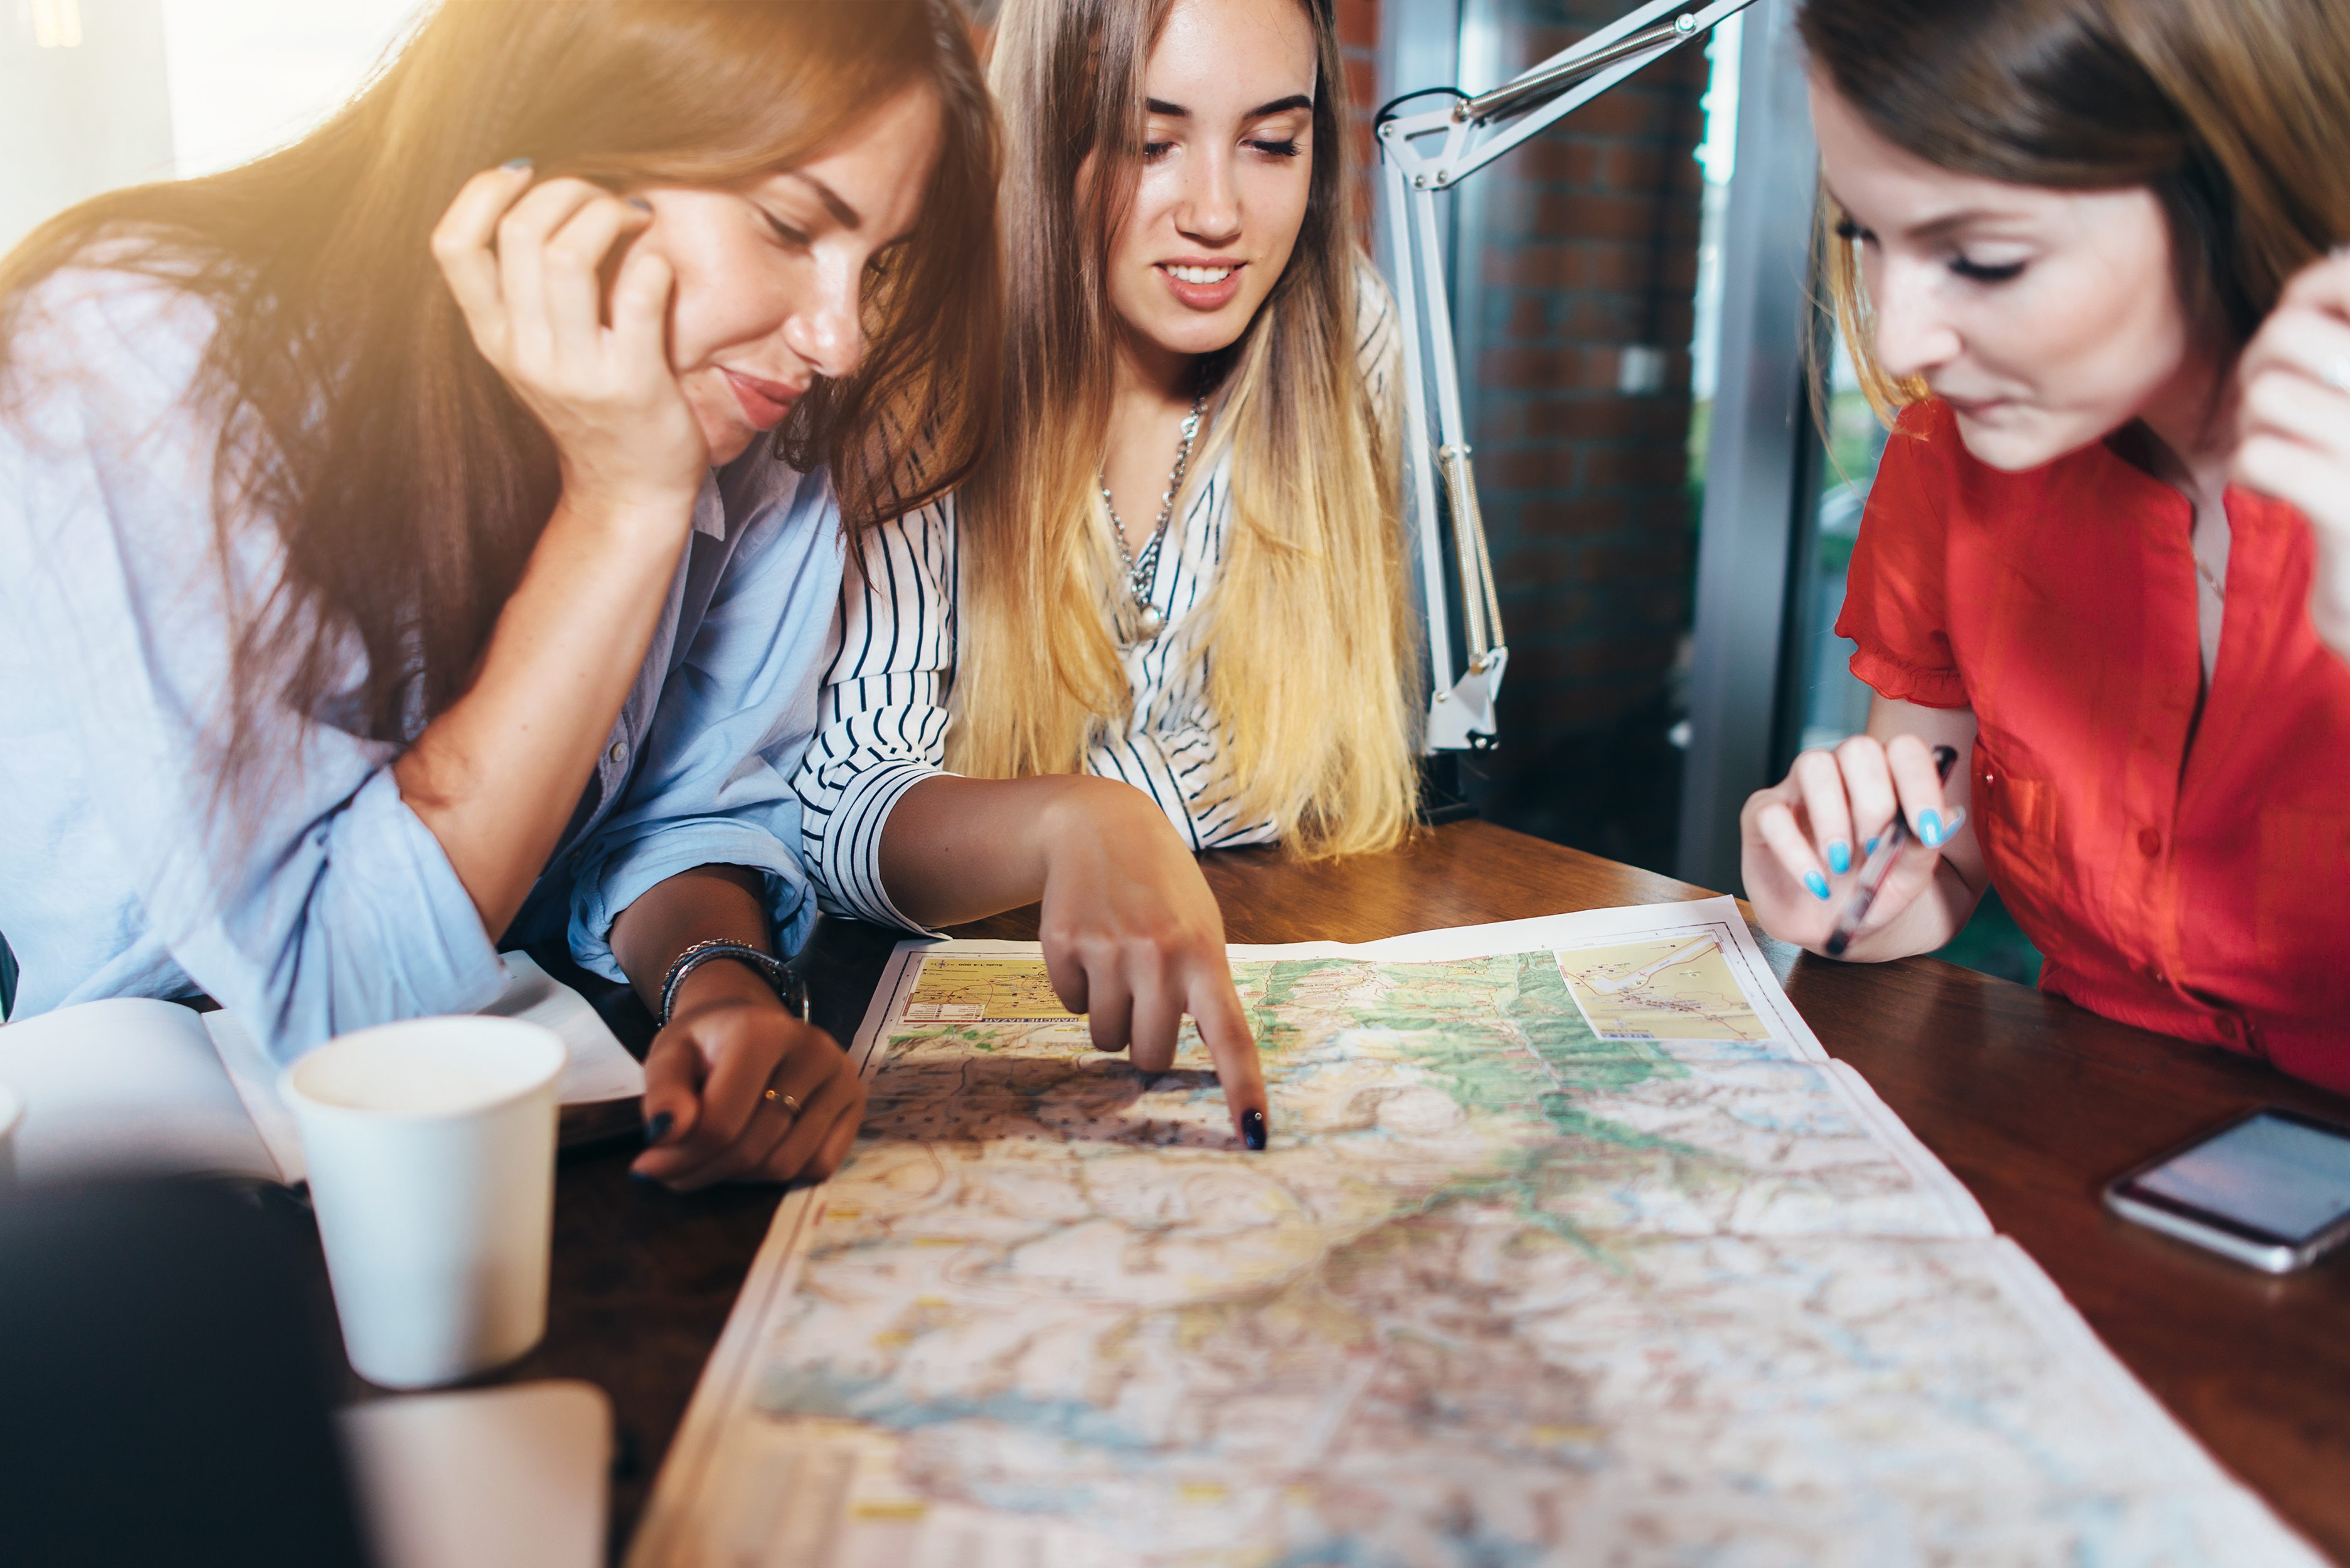 three-girlfriends-planning-their-vacation-sitting-at-table-around-map-choosing-the-destination.jpg